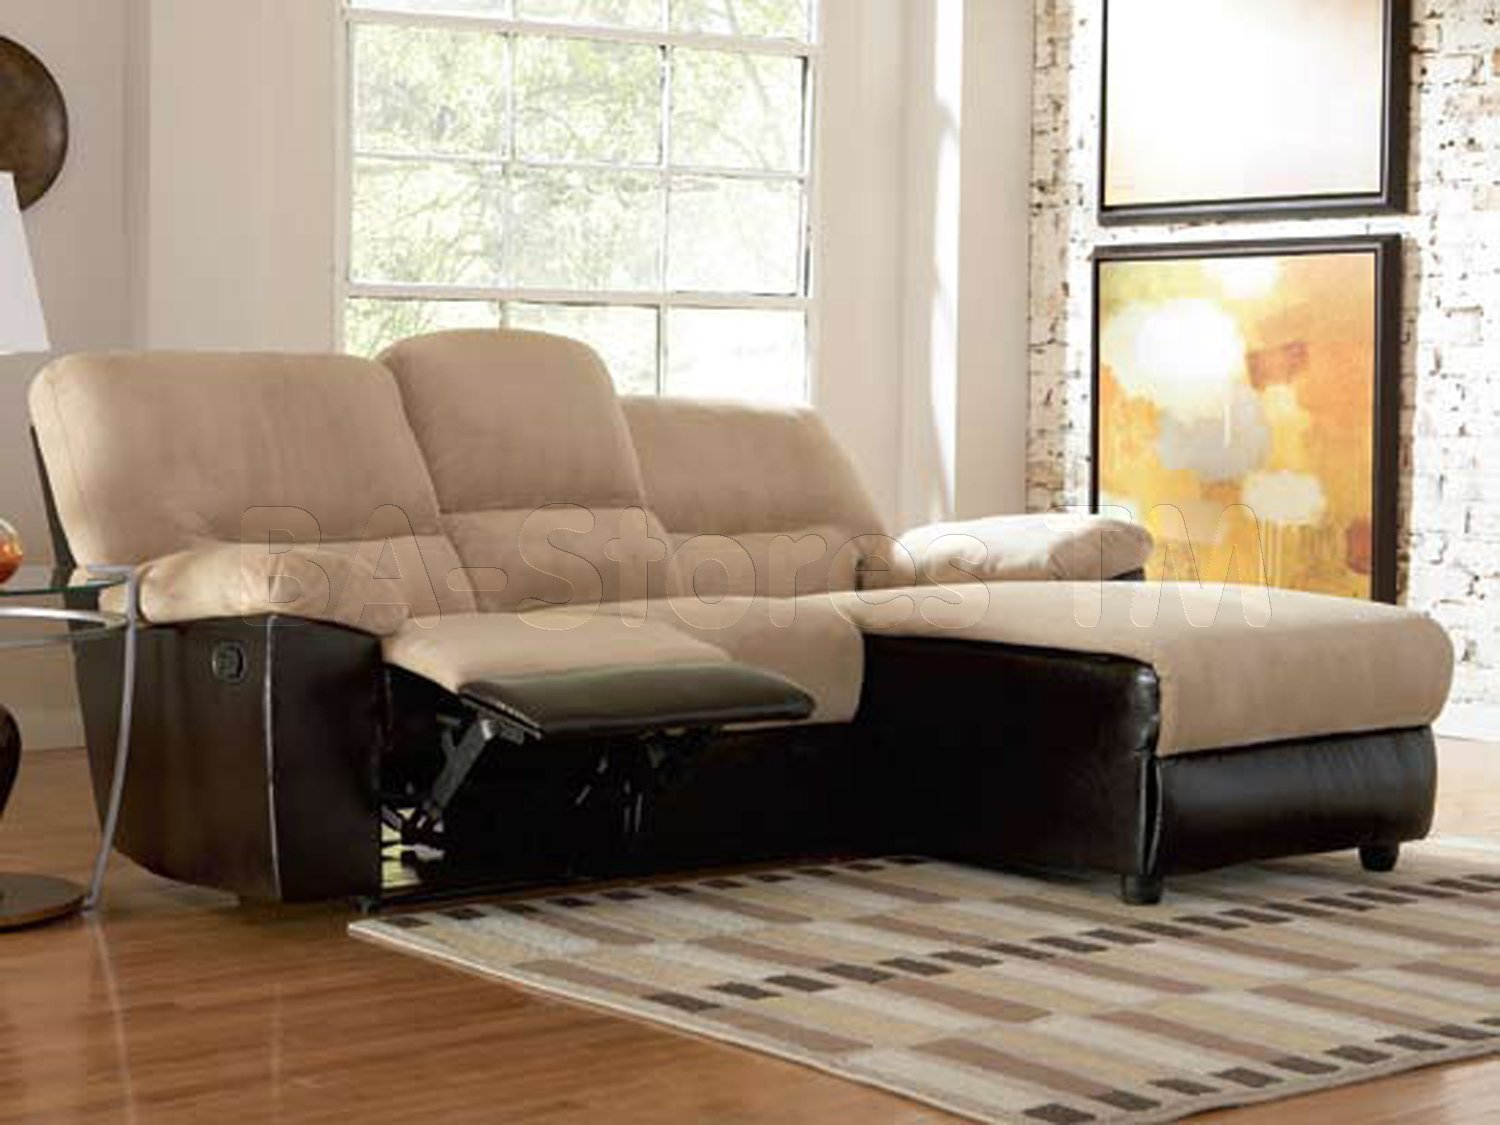 Attractive Small Sectional Sofas With Chaise Couch For Bedroom Ideas Apartments Spaces Recliners Rooms Corner Small Scale Very Apppie Org